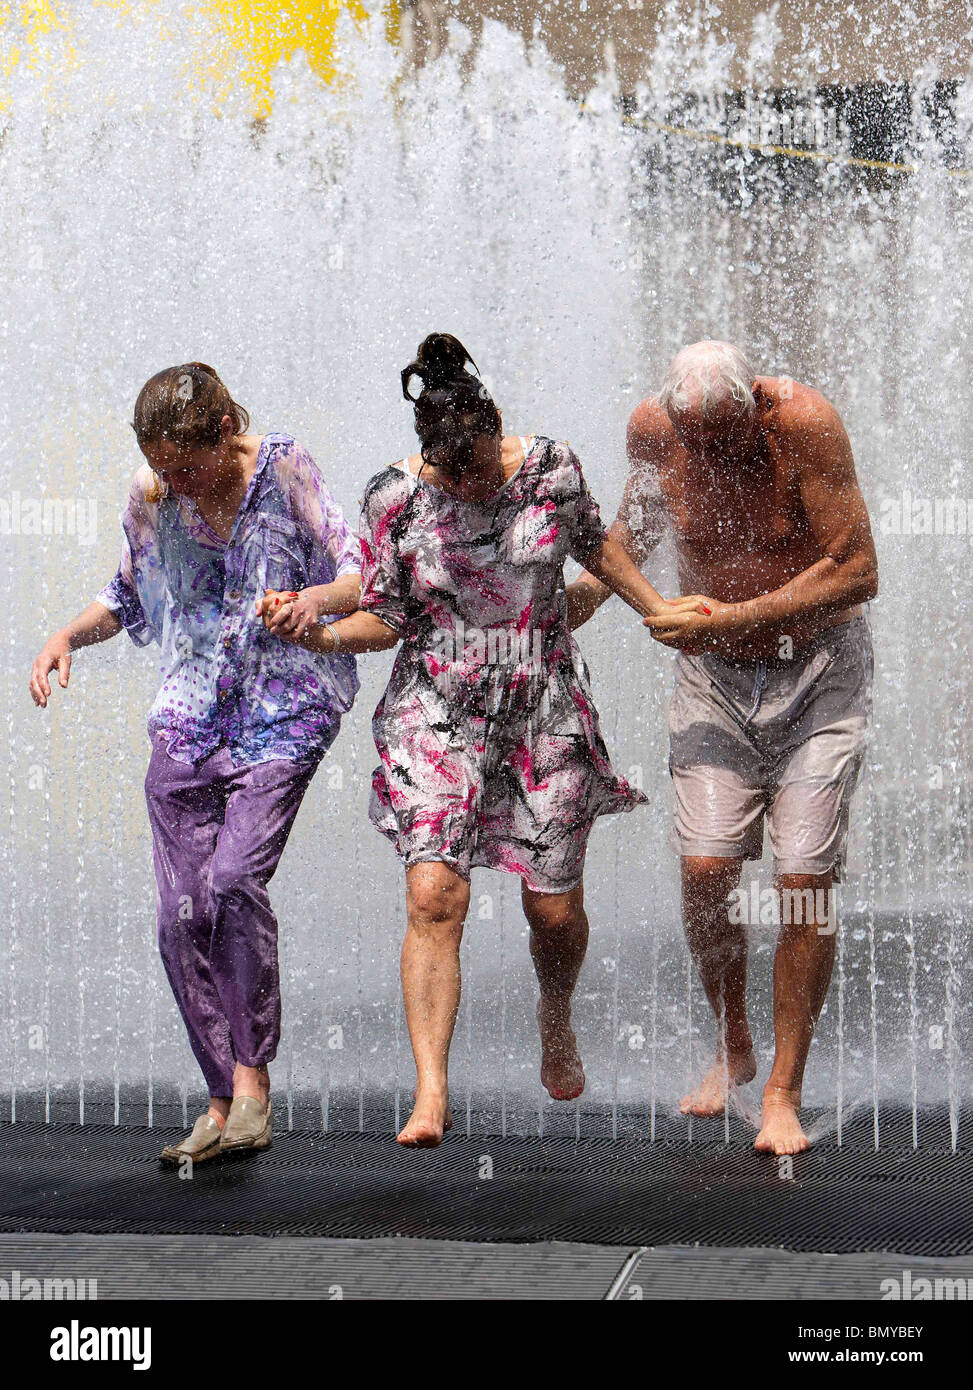 People cooling off in a fountain outside the Royal Festival Hall during hot weather in London - Stock Image